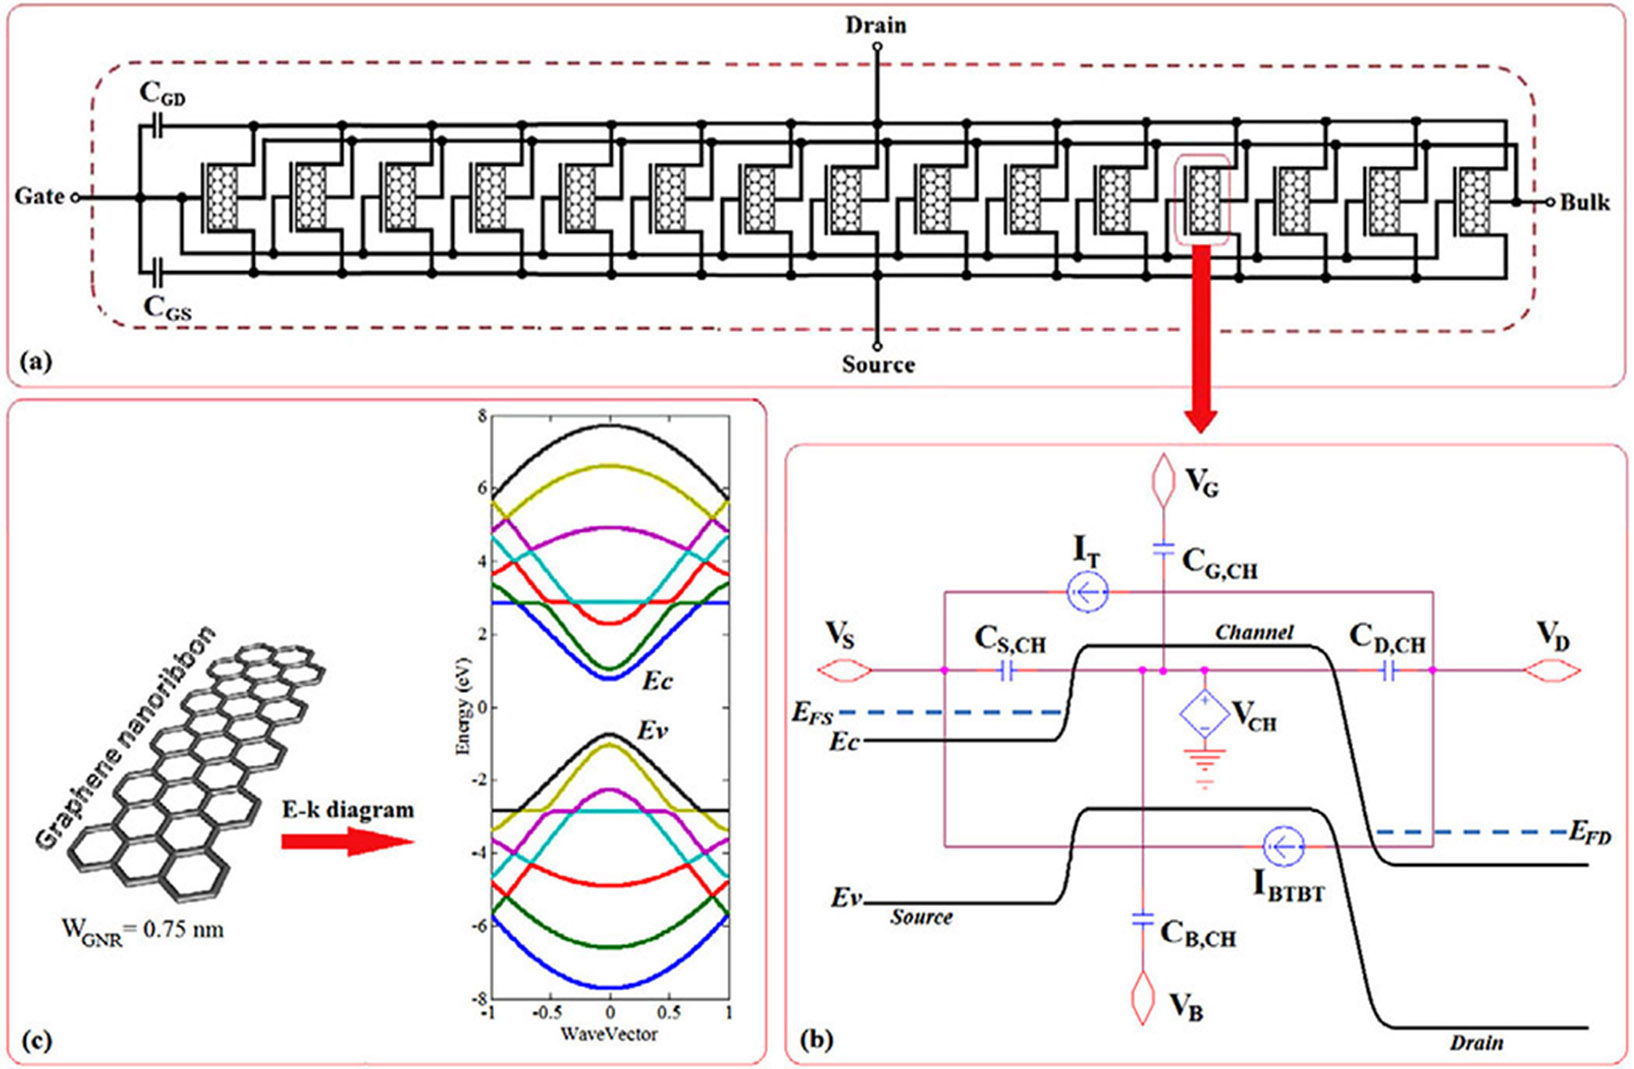 Temperature Sensor For Monitoring Of Hot Spots In Integrated Diagram A Circuit Implementation The Multi Channel Gnr Fet Cgd And Cgs Gate Drain Source Capacitance Respectively